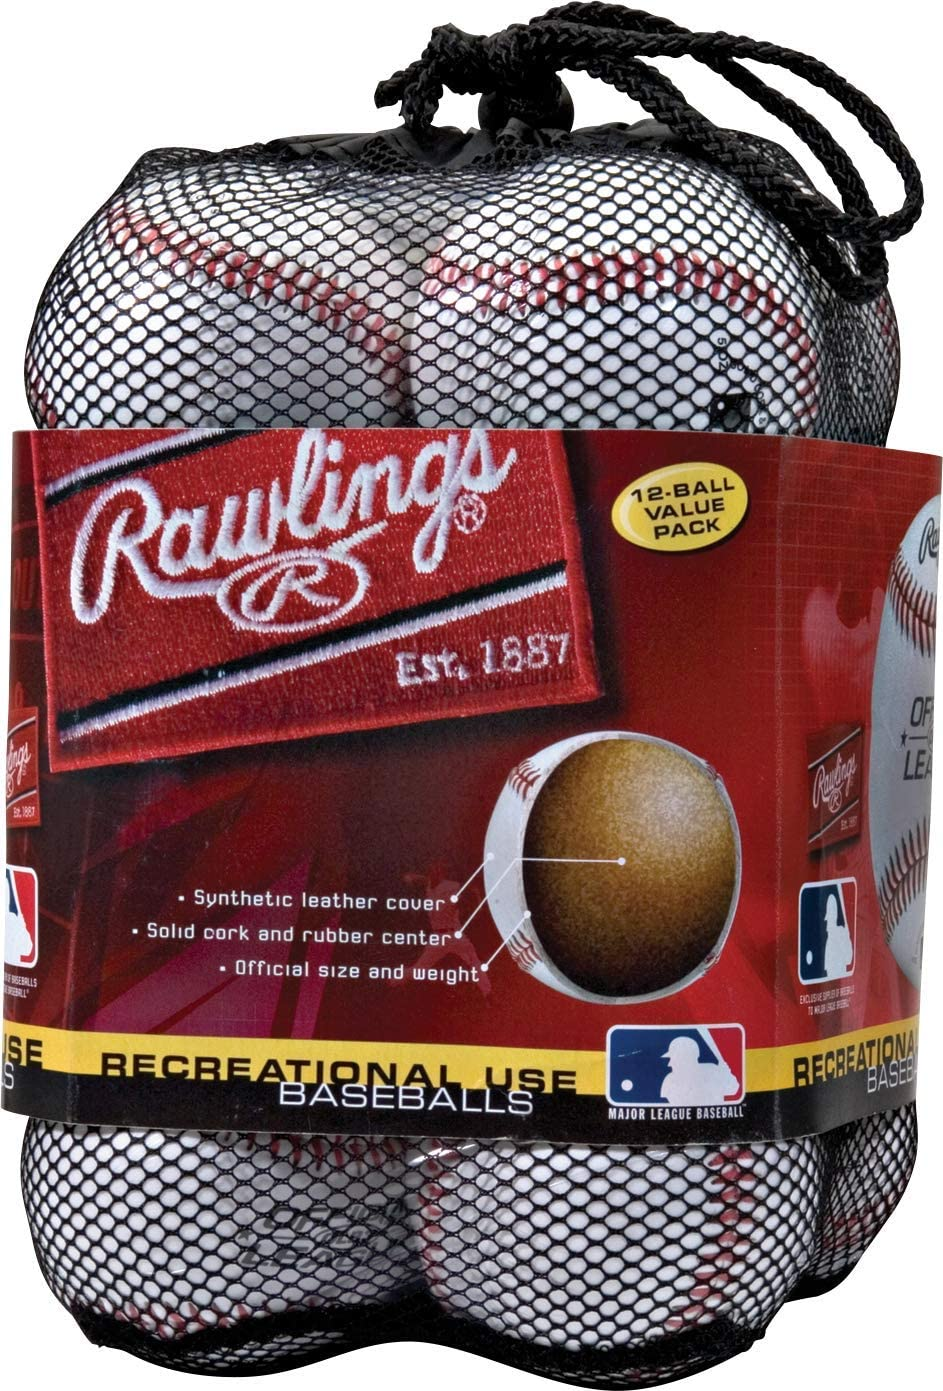 B0000CA8WW Rawlings Official League Recreational Grade Baseballs, OLB3 (Box of 3 or Bag of 12) 71Rt7dMxzJL